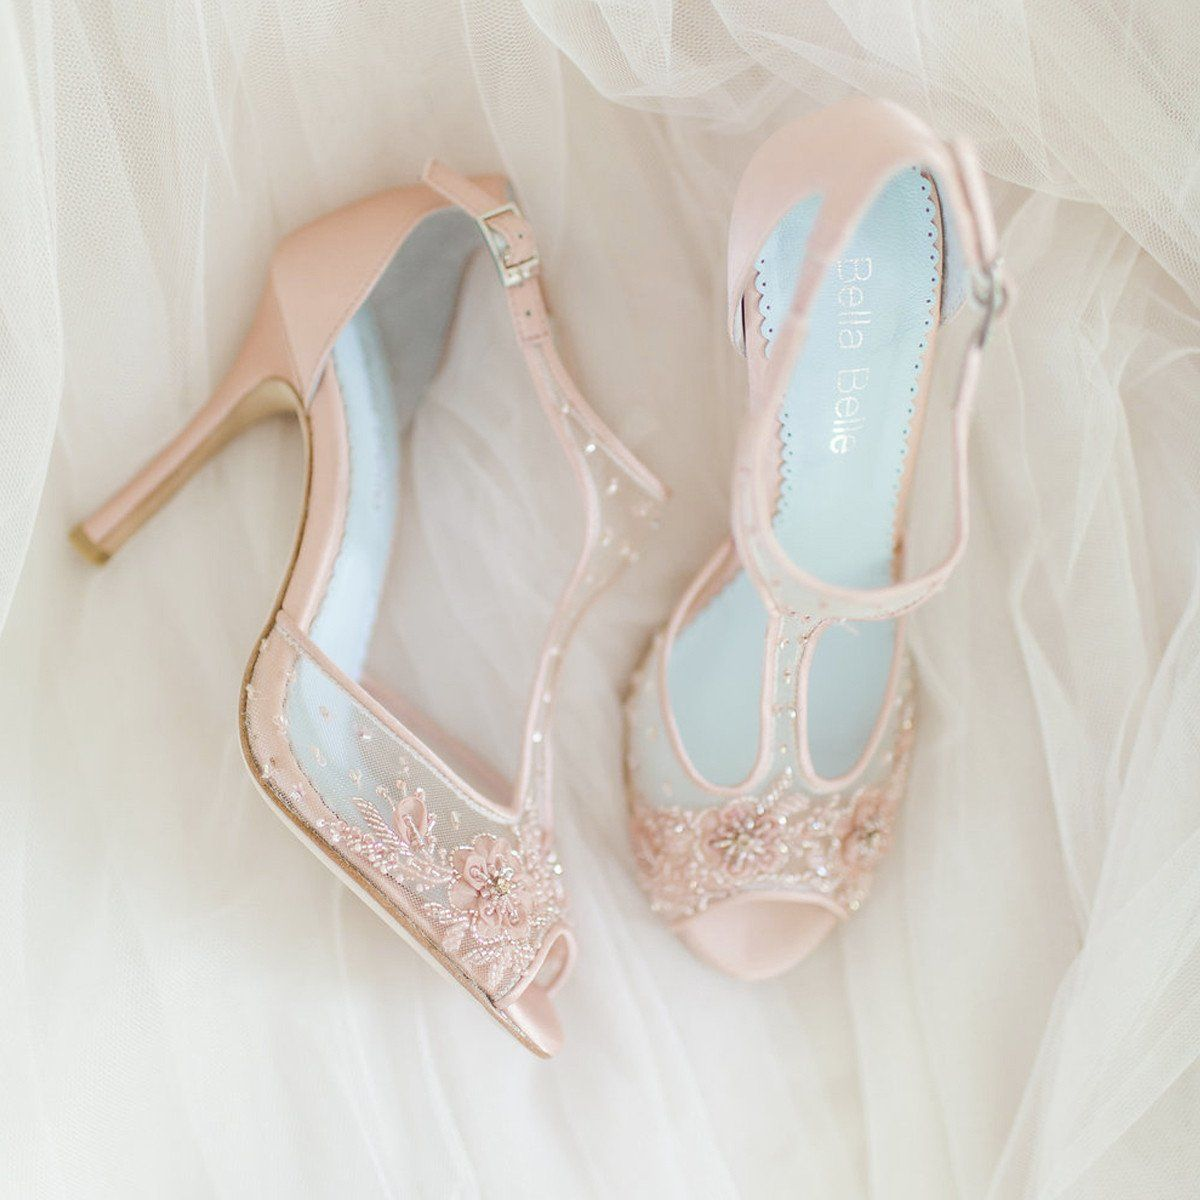 d985bf863b57 SIGN UP FOR RESTOCK ALERT! - Paloma Blush -  Eternal  bridal collection -  Romantic mesh heel with blush floral beading - Hand beaded and embroidered  ...